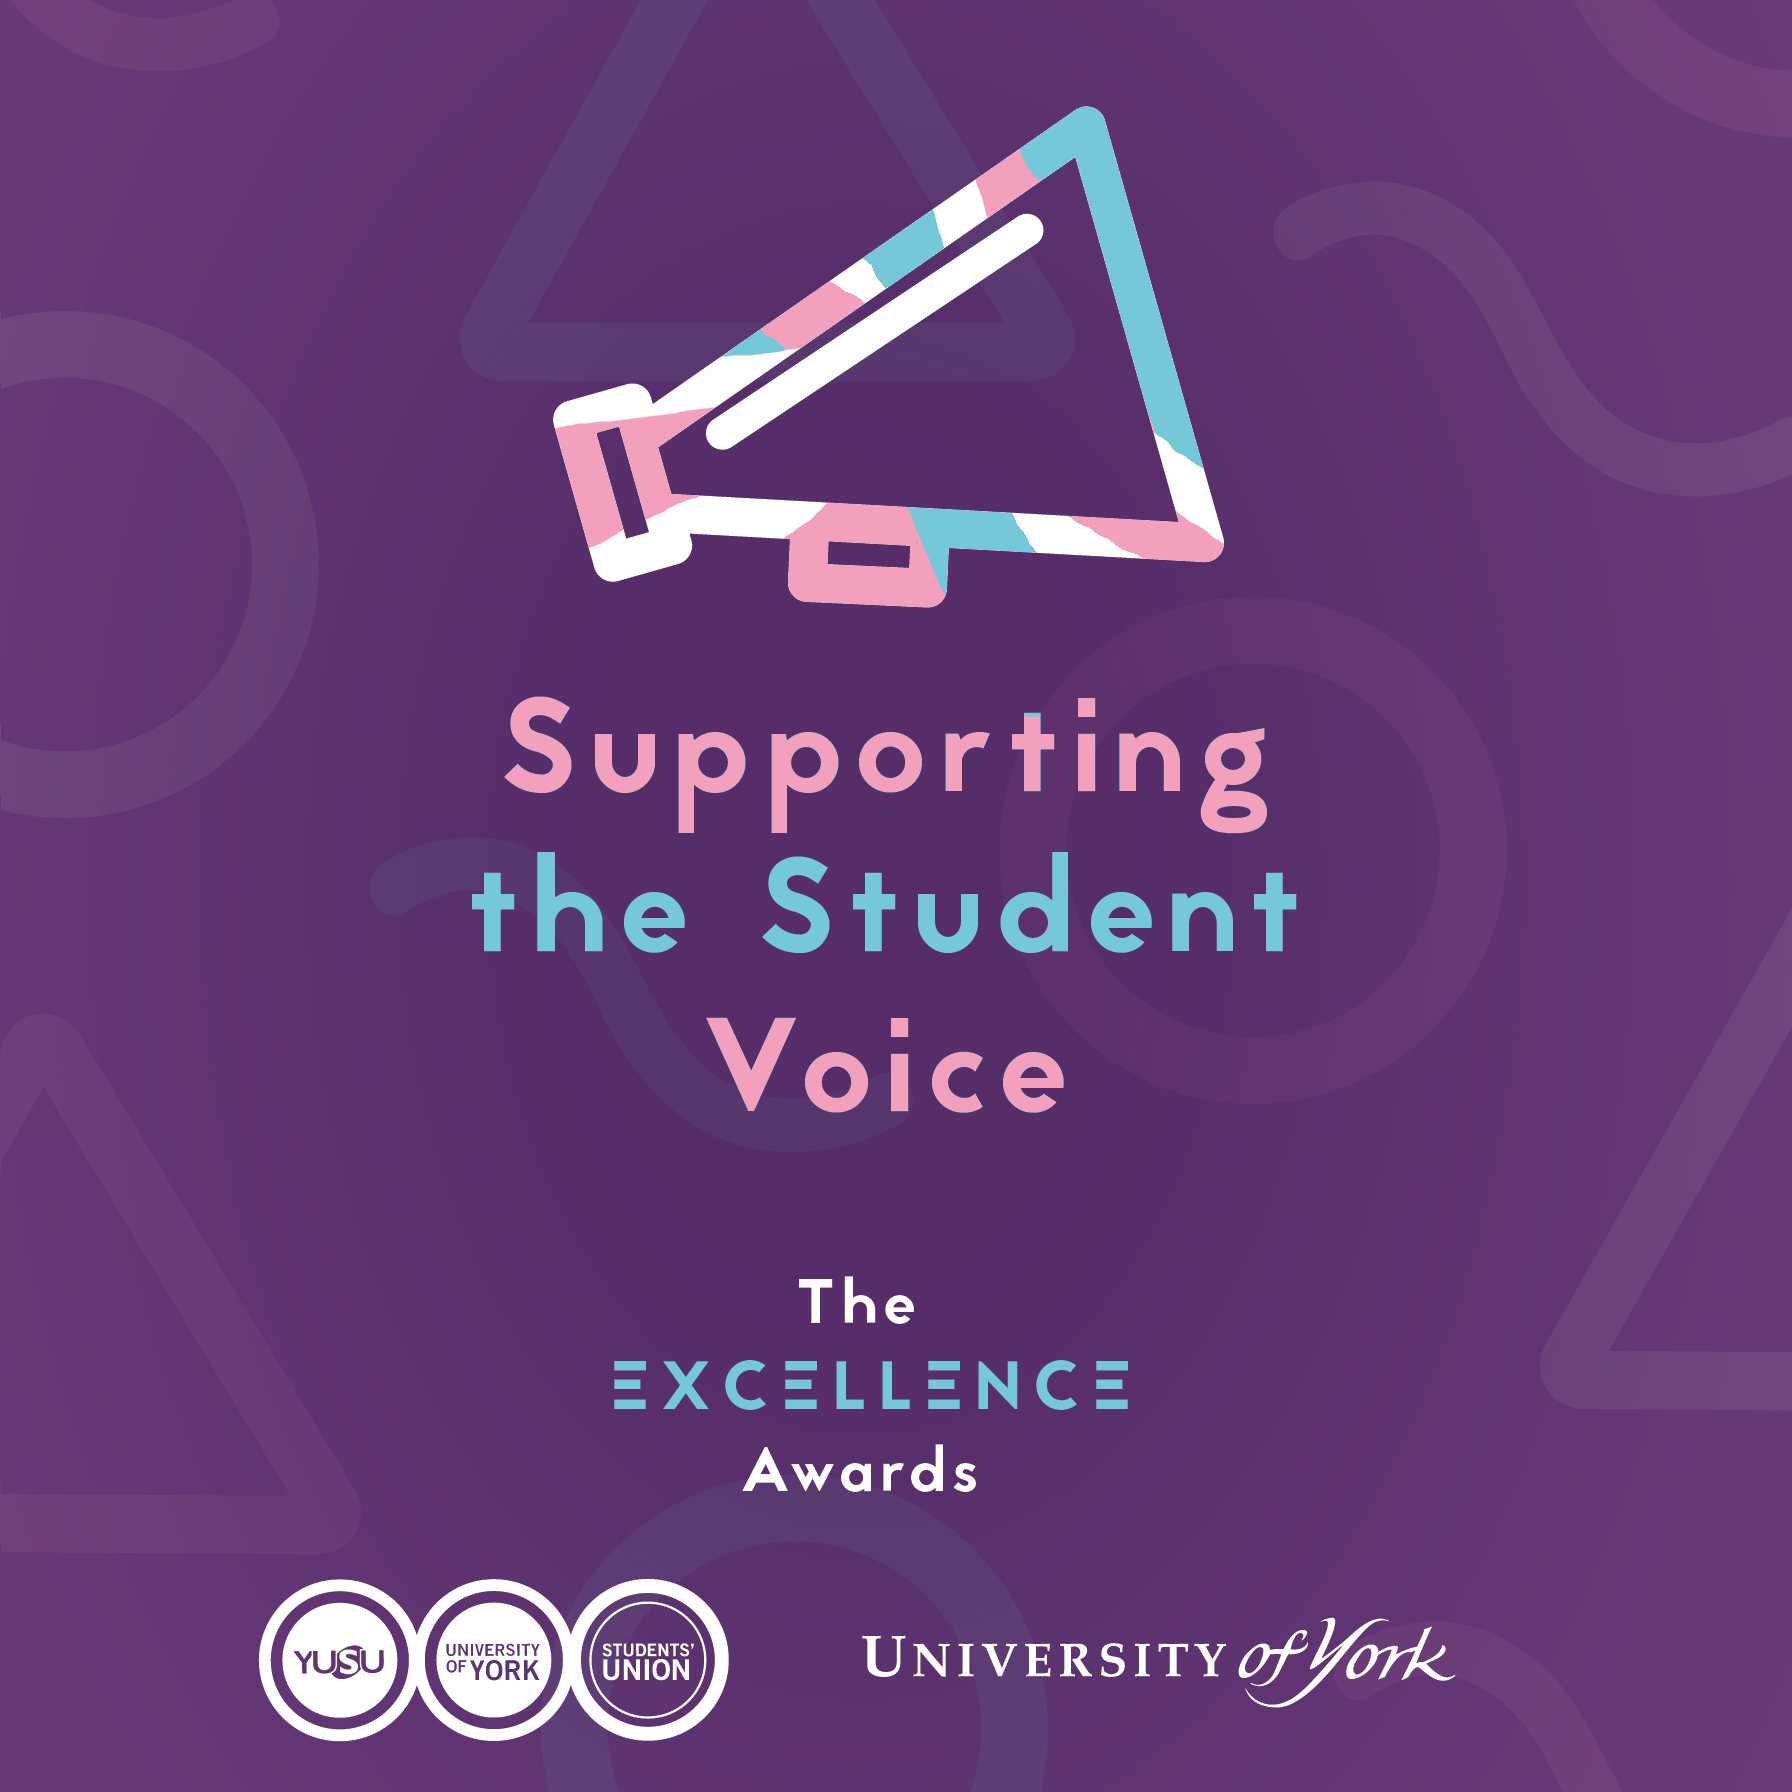 Supporting the Student Voice